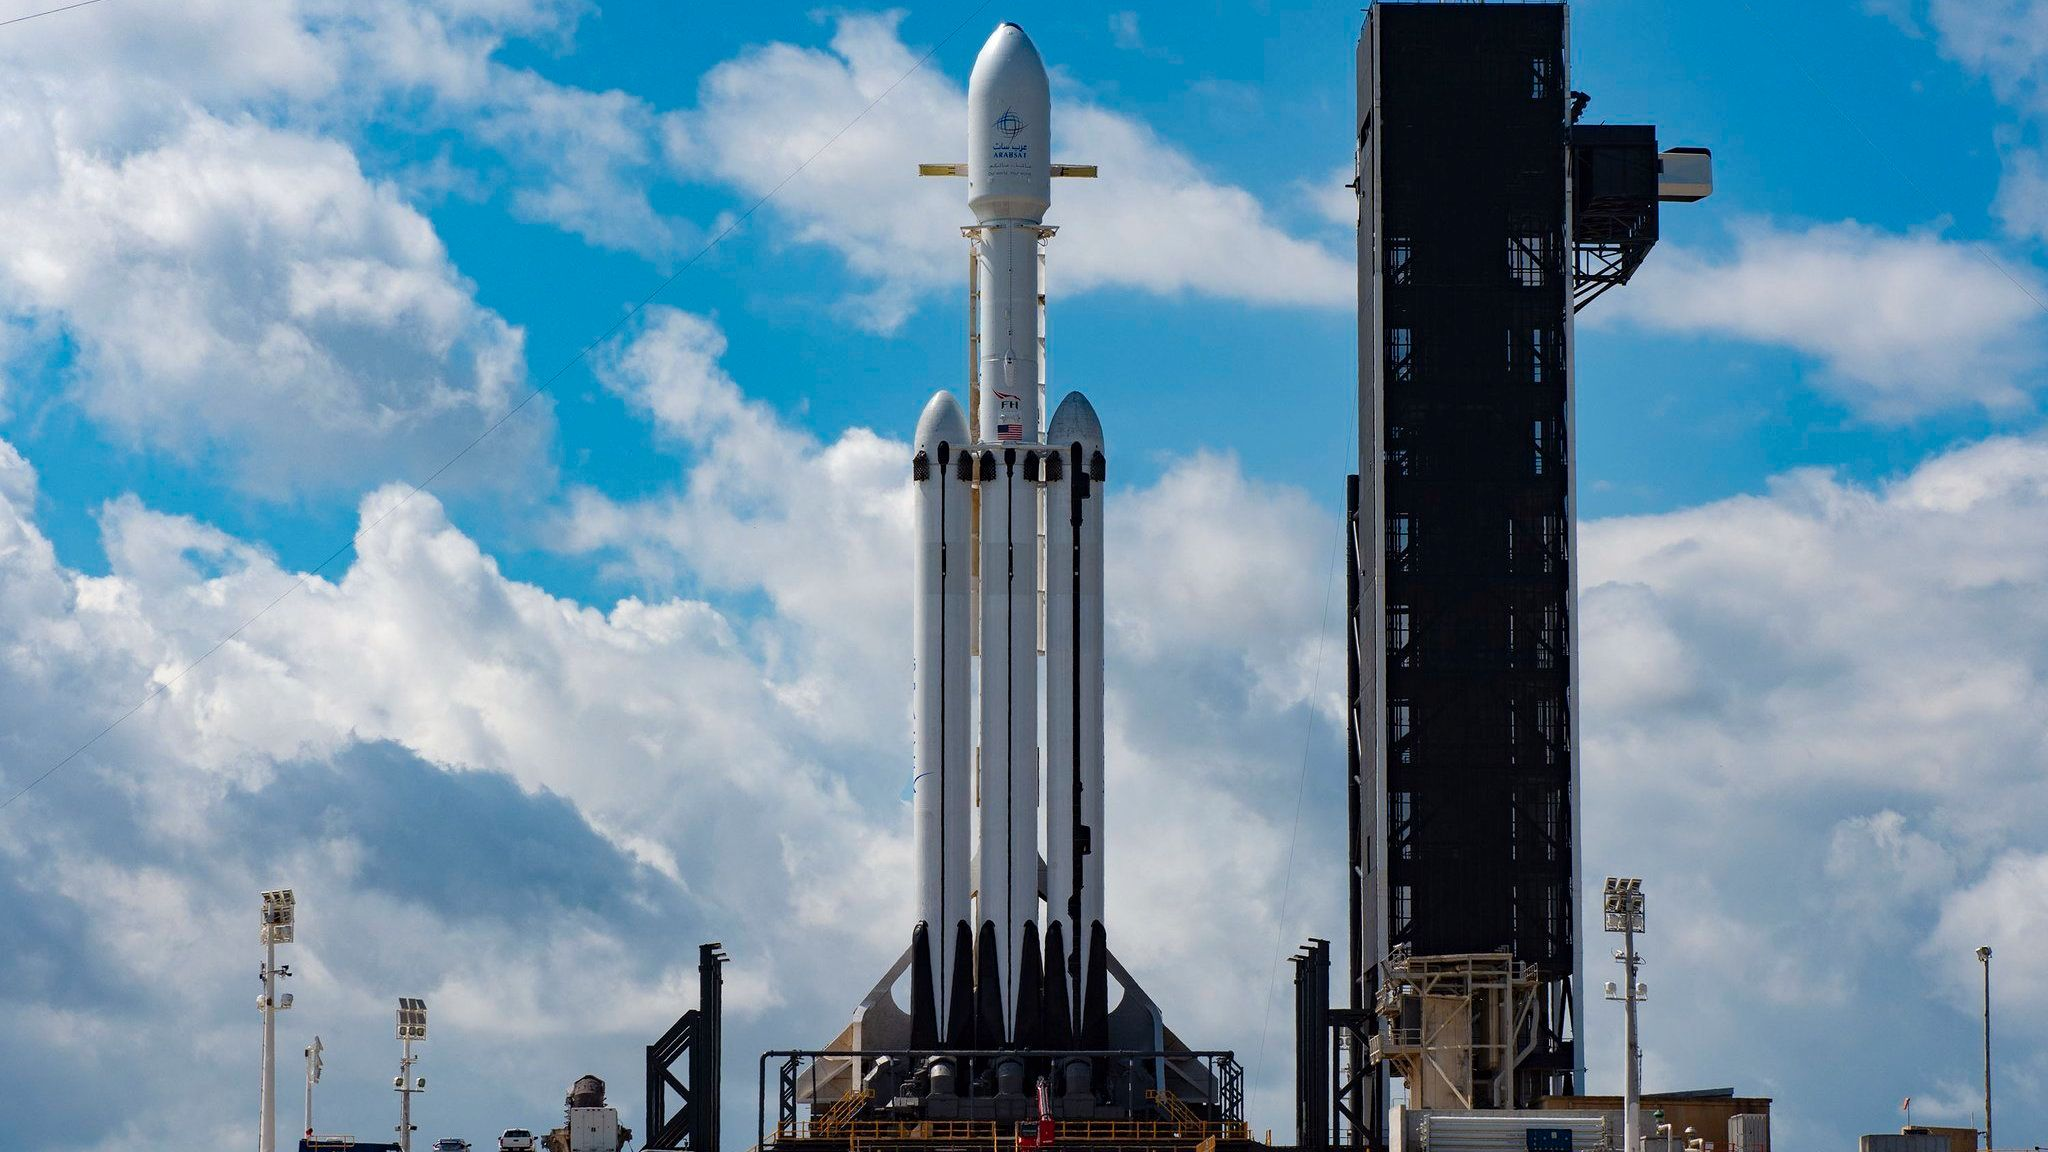 Snart skal Falcon Heavy fly for andre gang